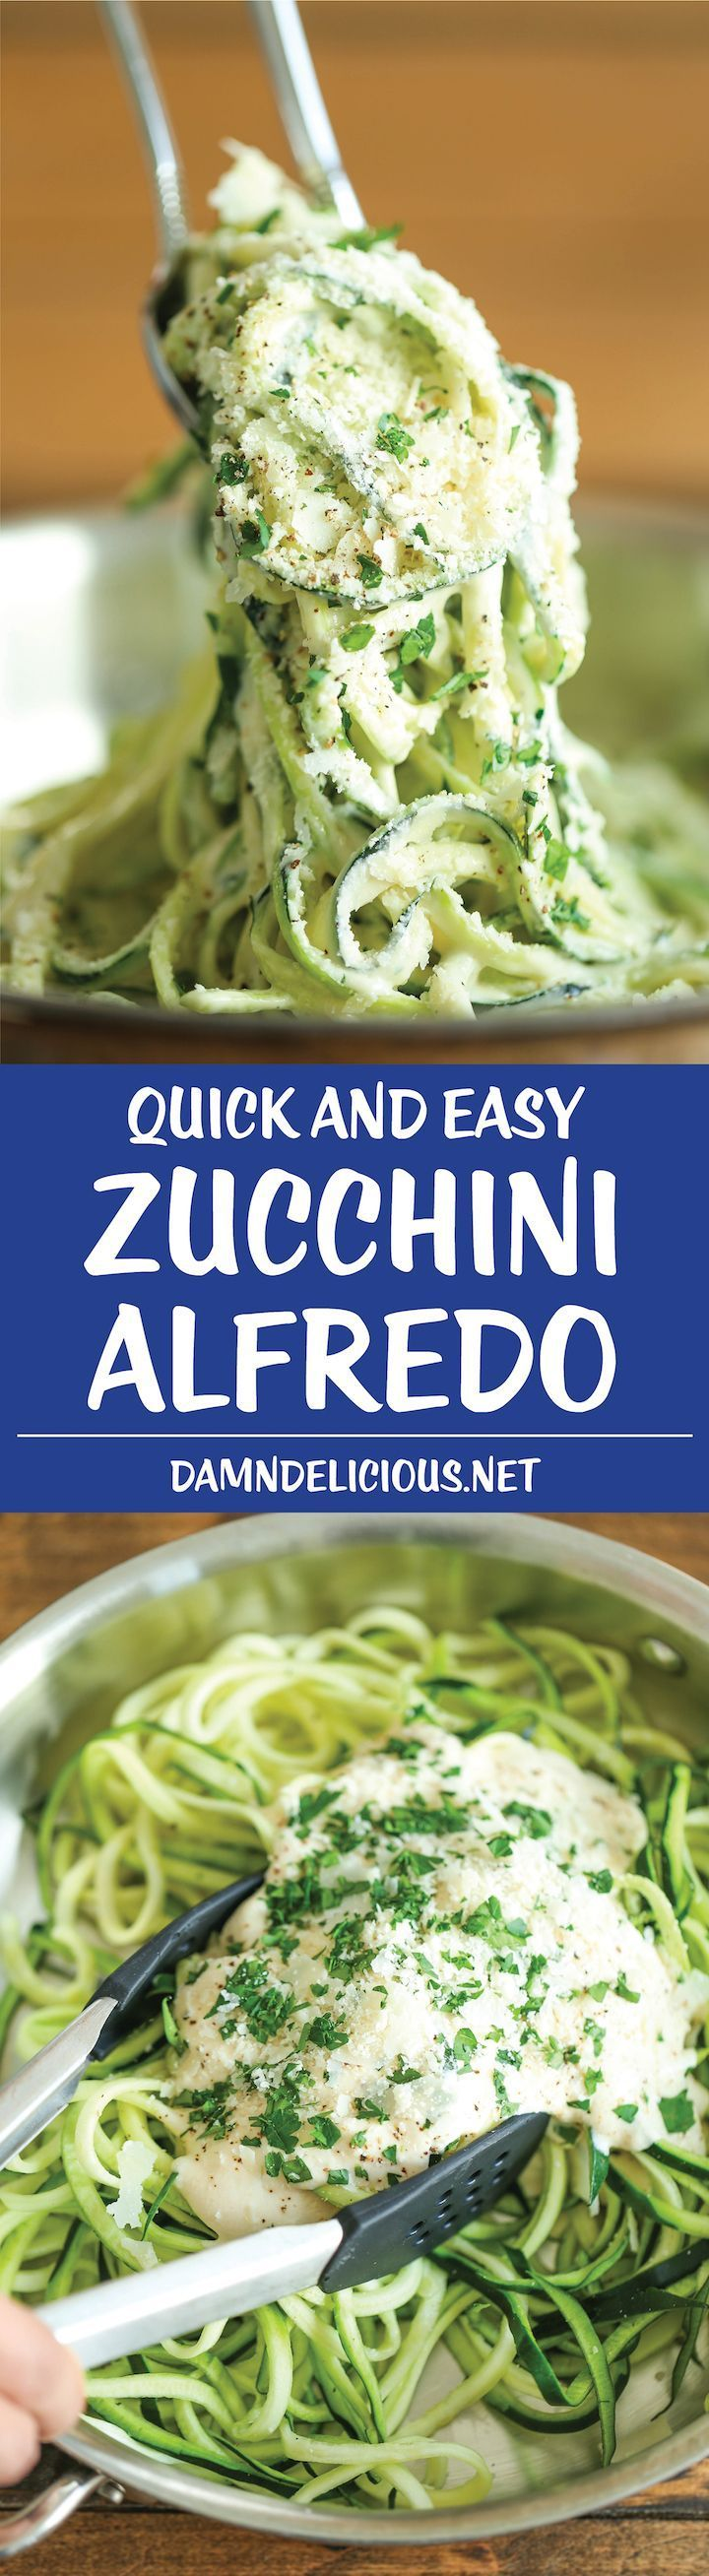 Alfredo Zucchini Alfredo - Healthy, decadent, amazingly creamy AND low-carb. Finally, a guilt-less alfredo dish that the entire family can enjoy! 203.6 calories.Finally Bhalobasha     Finally Bhalobasa (English: